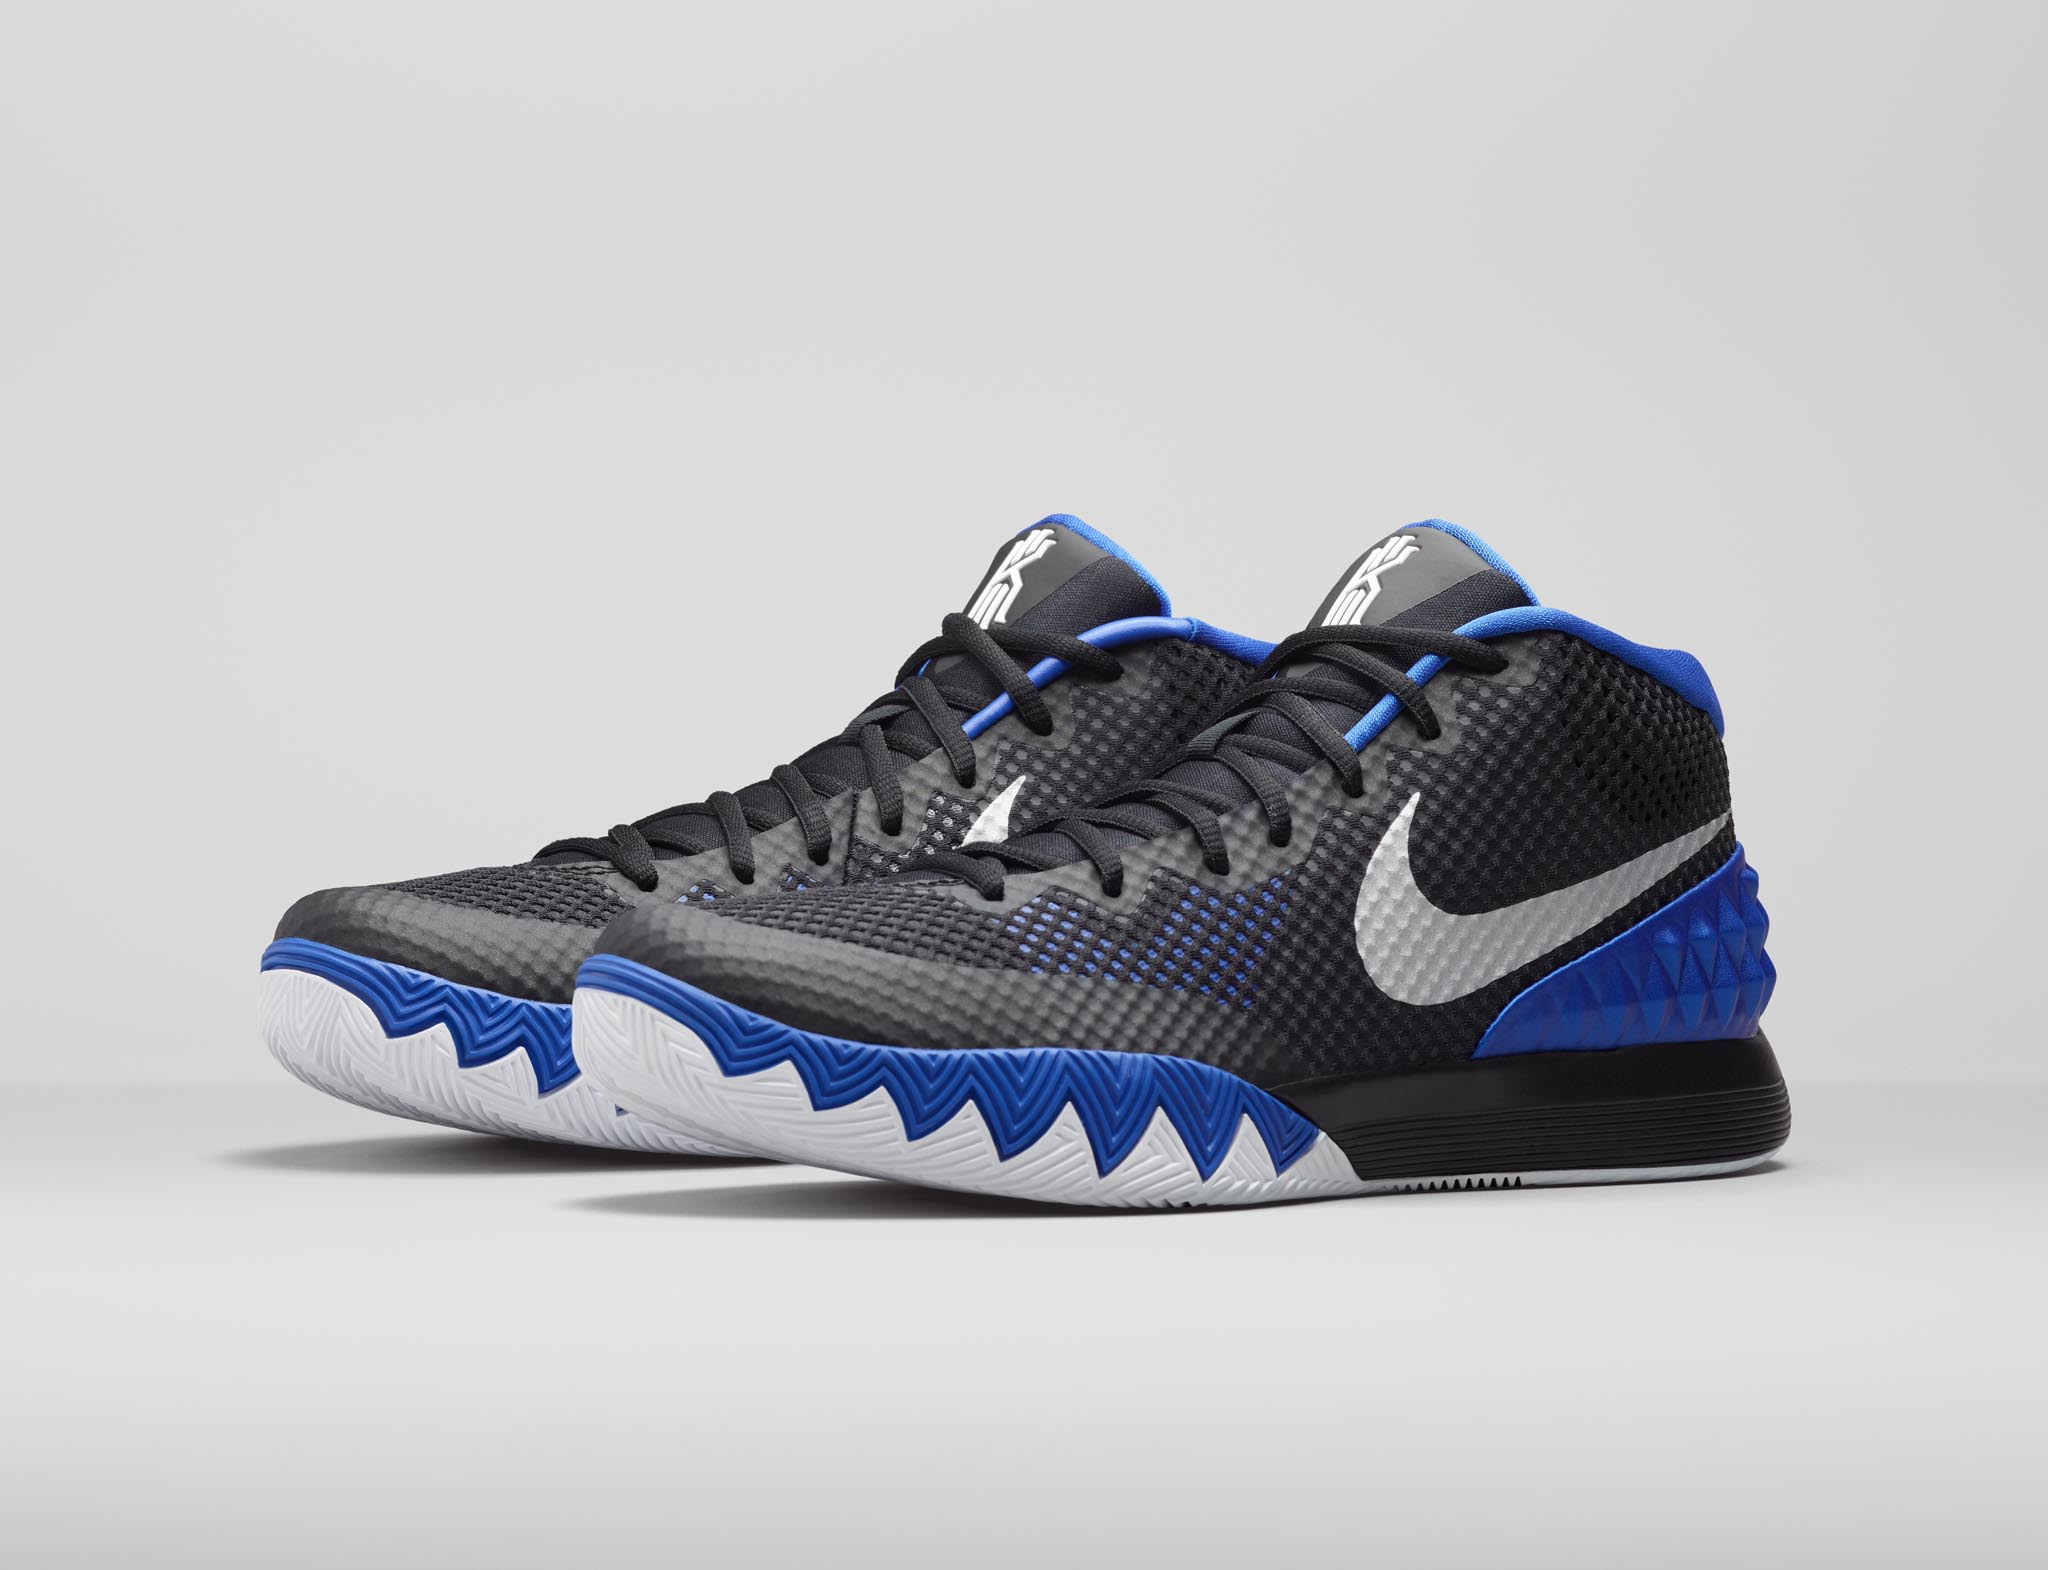 premium selection 41198 3a8c1 where to buy nba 2k15 nike kyrie 1 177d5 a4392